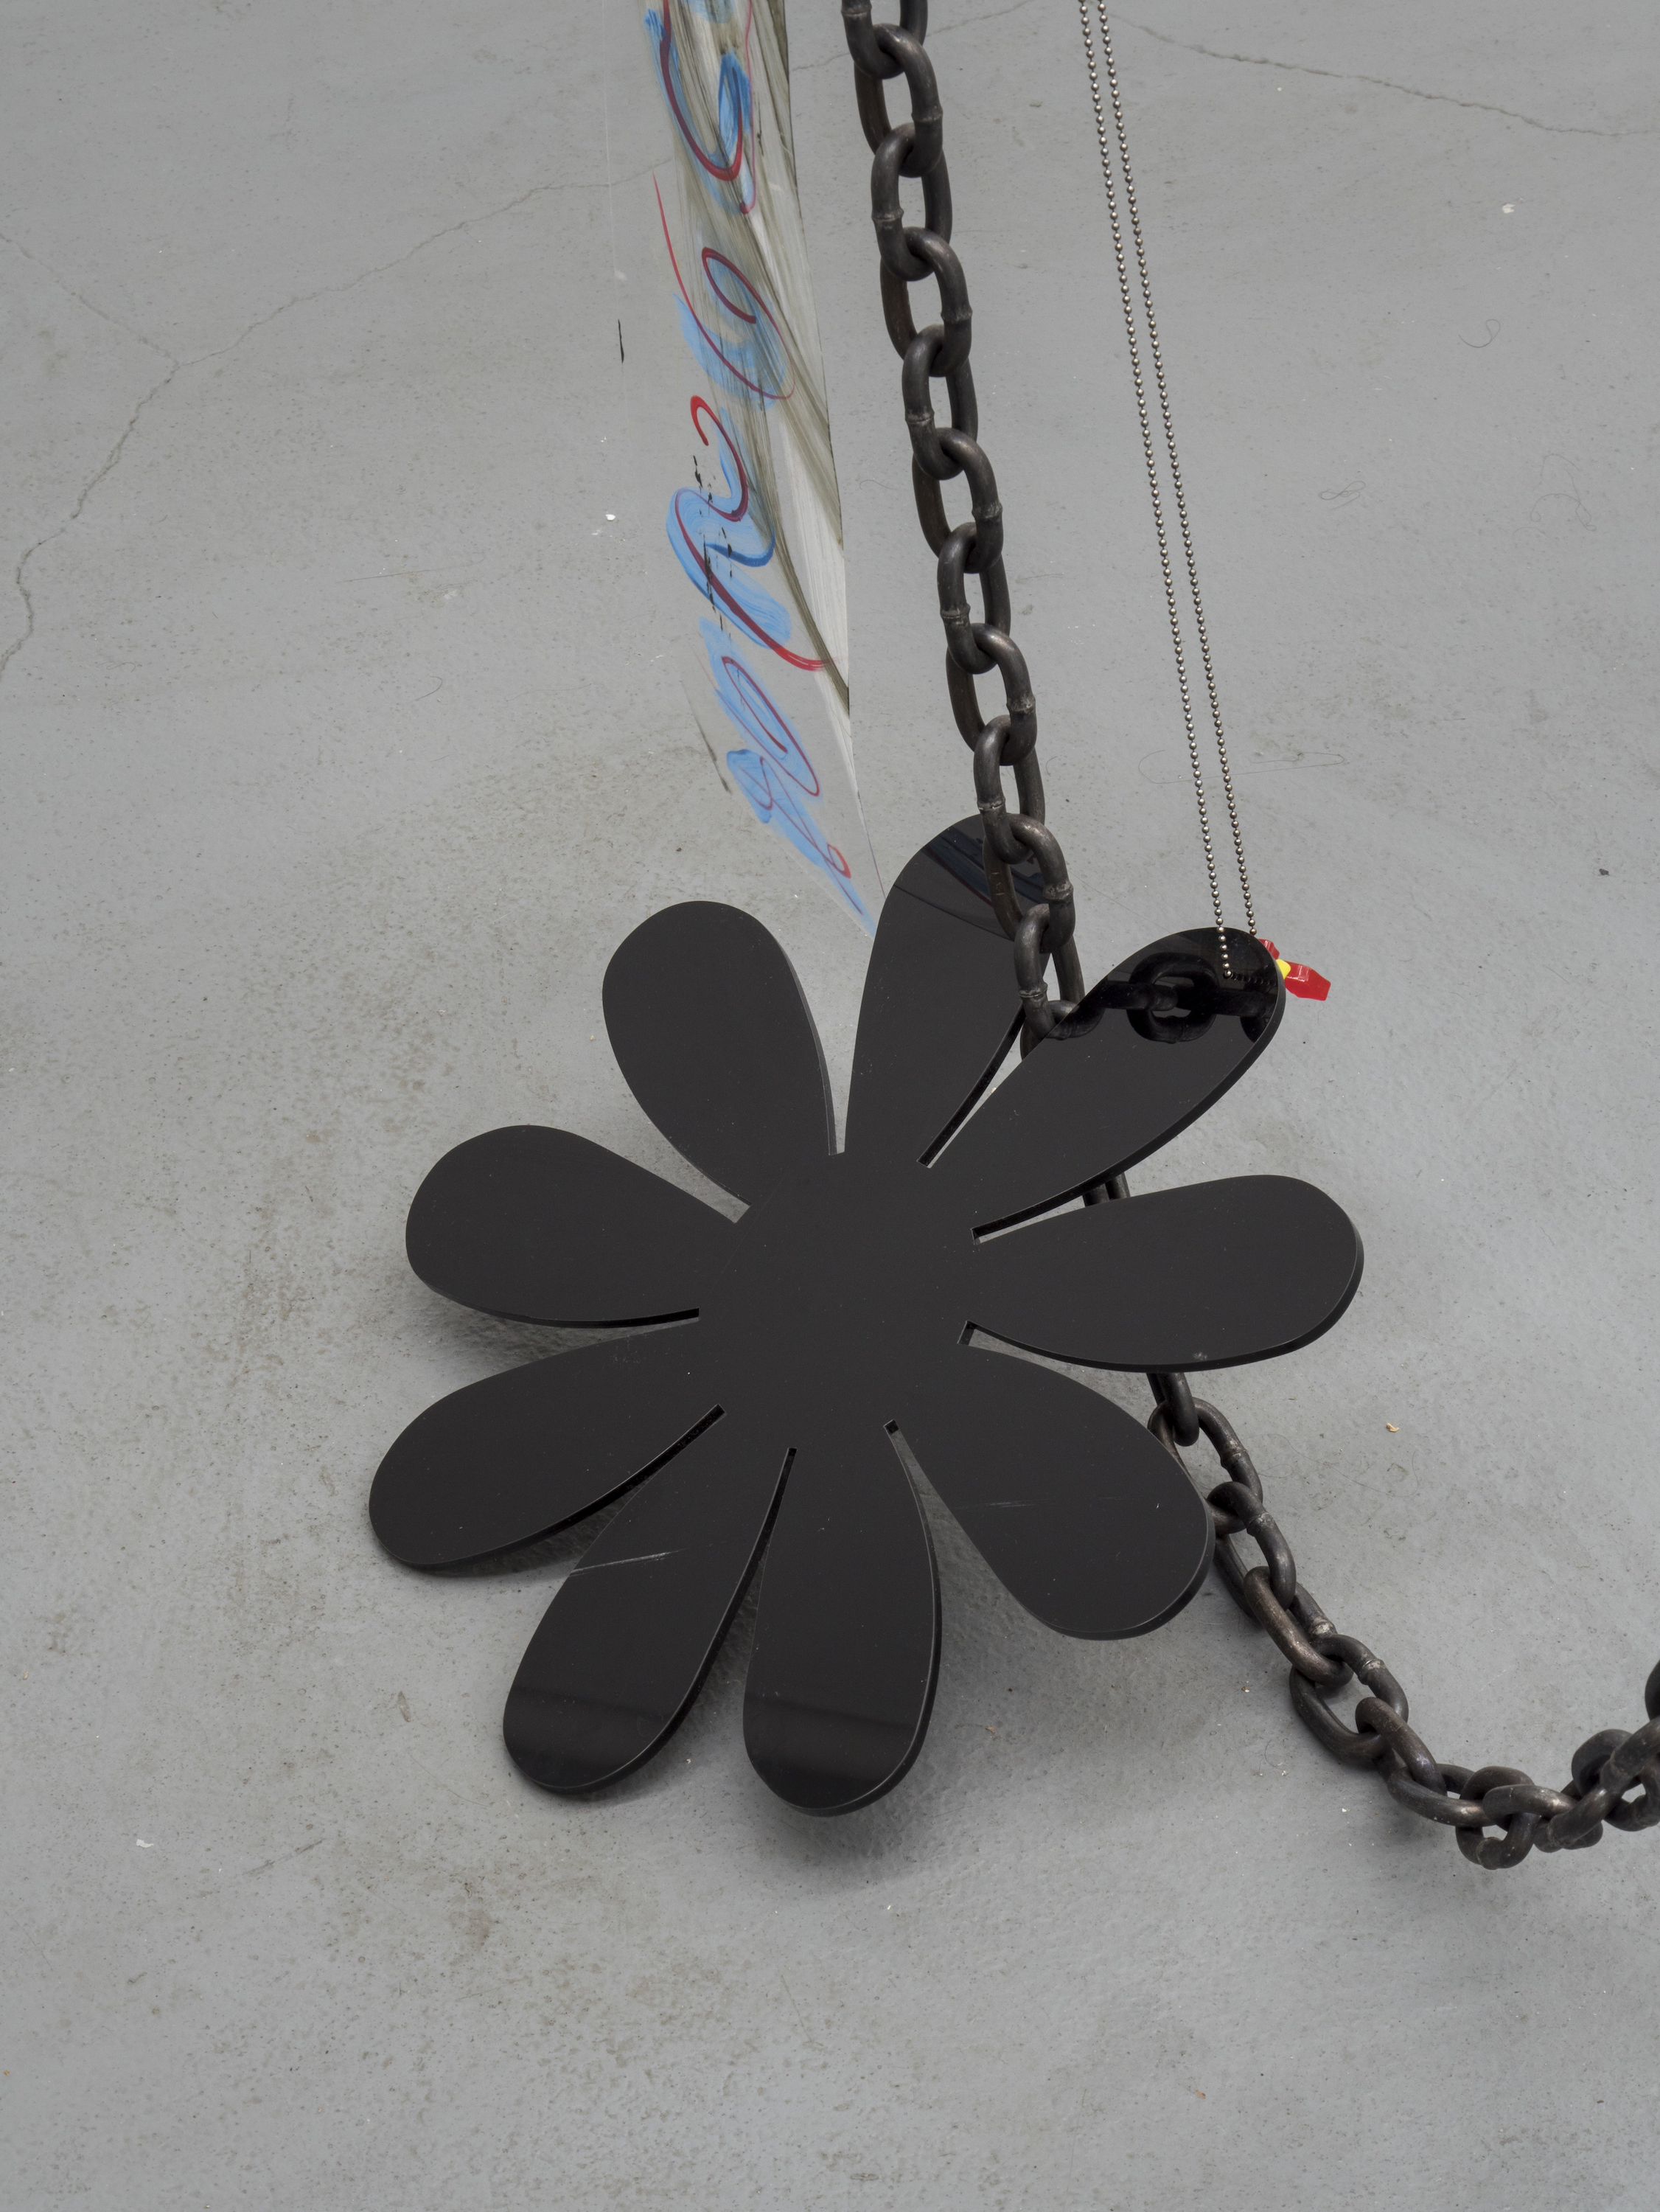 Raque Ford,  DaisyME (detail),  2017, acrylic paint on polypropelene, steel chain, ball chain, zip ties and acrylic, 86 x 32 in